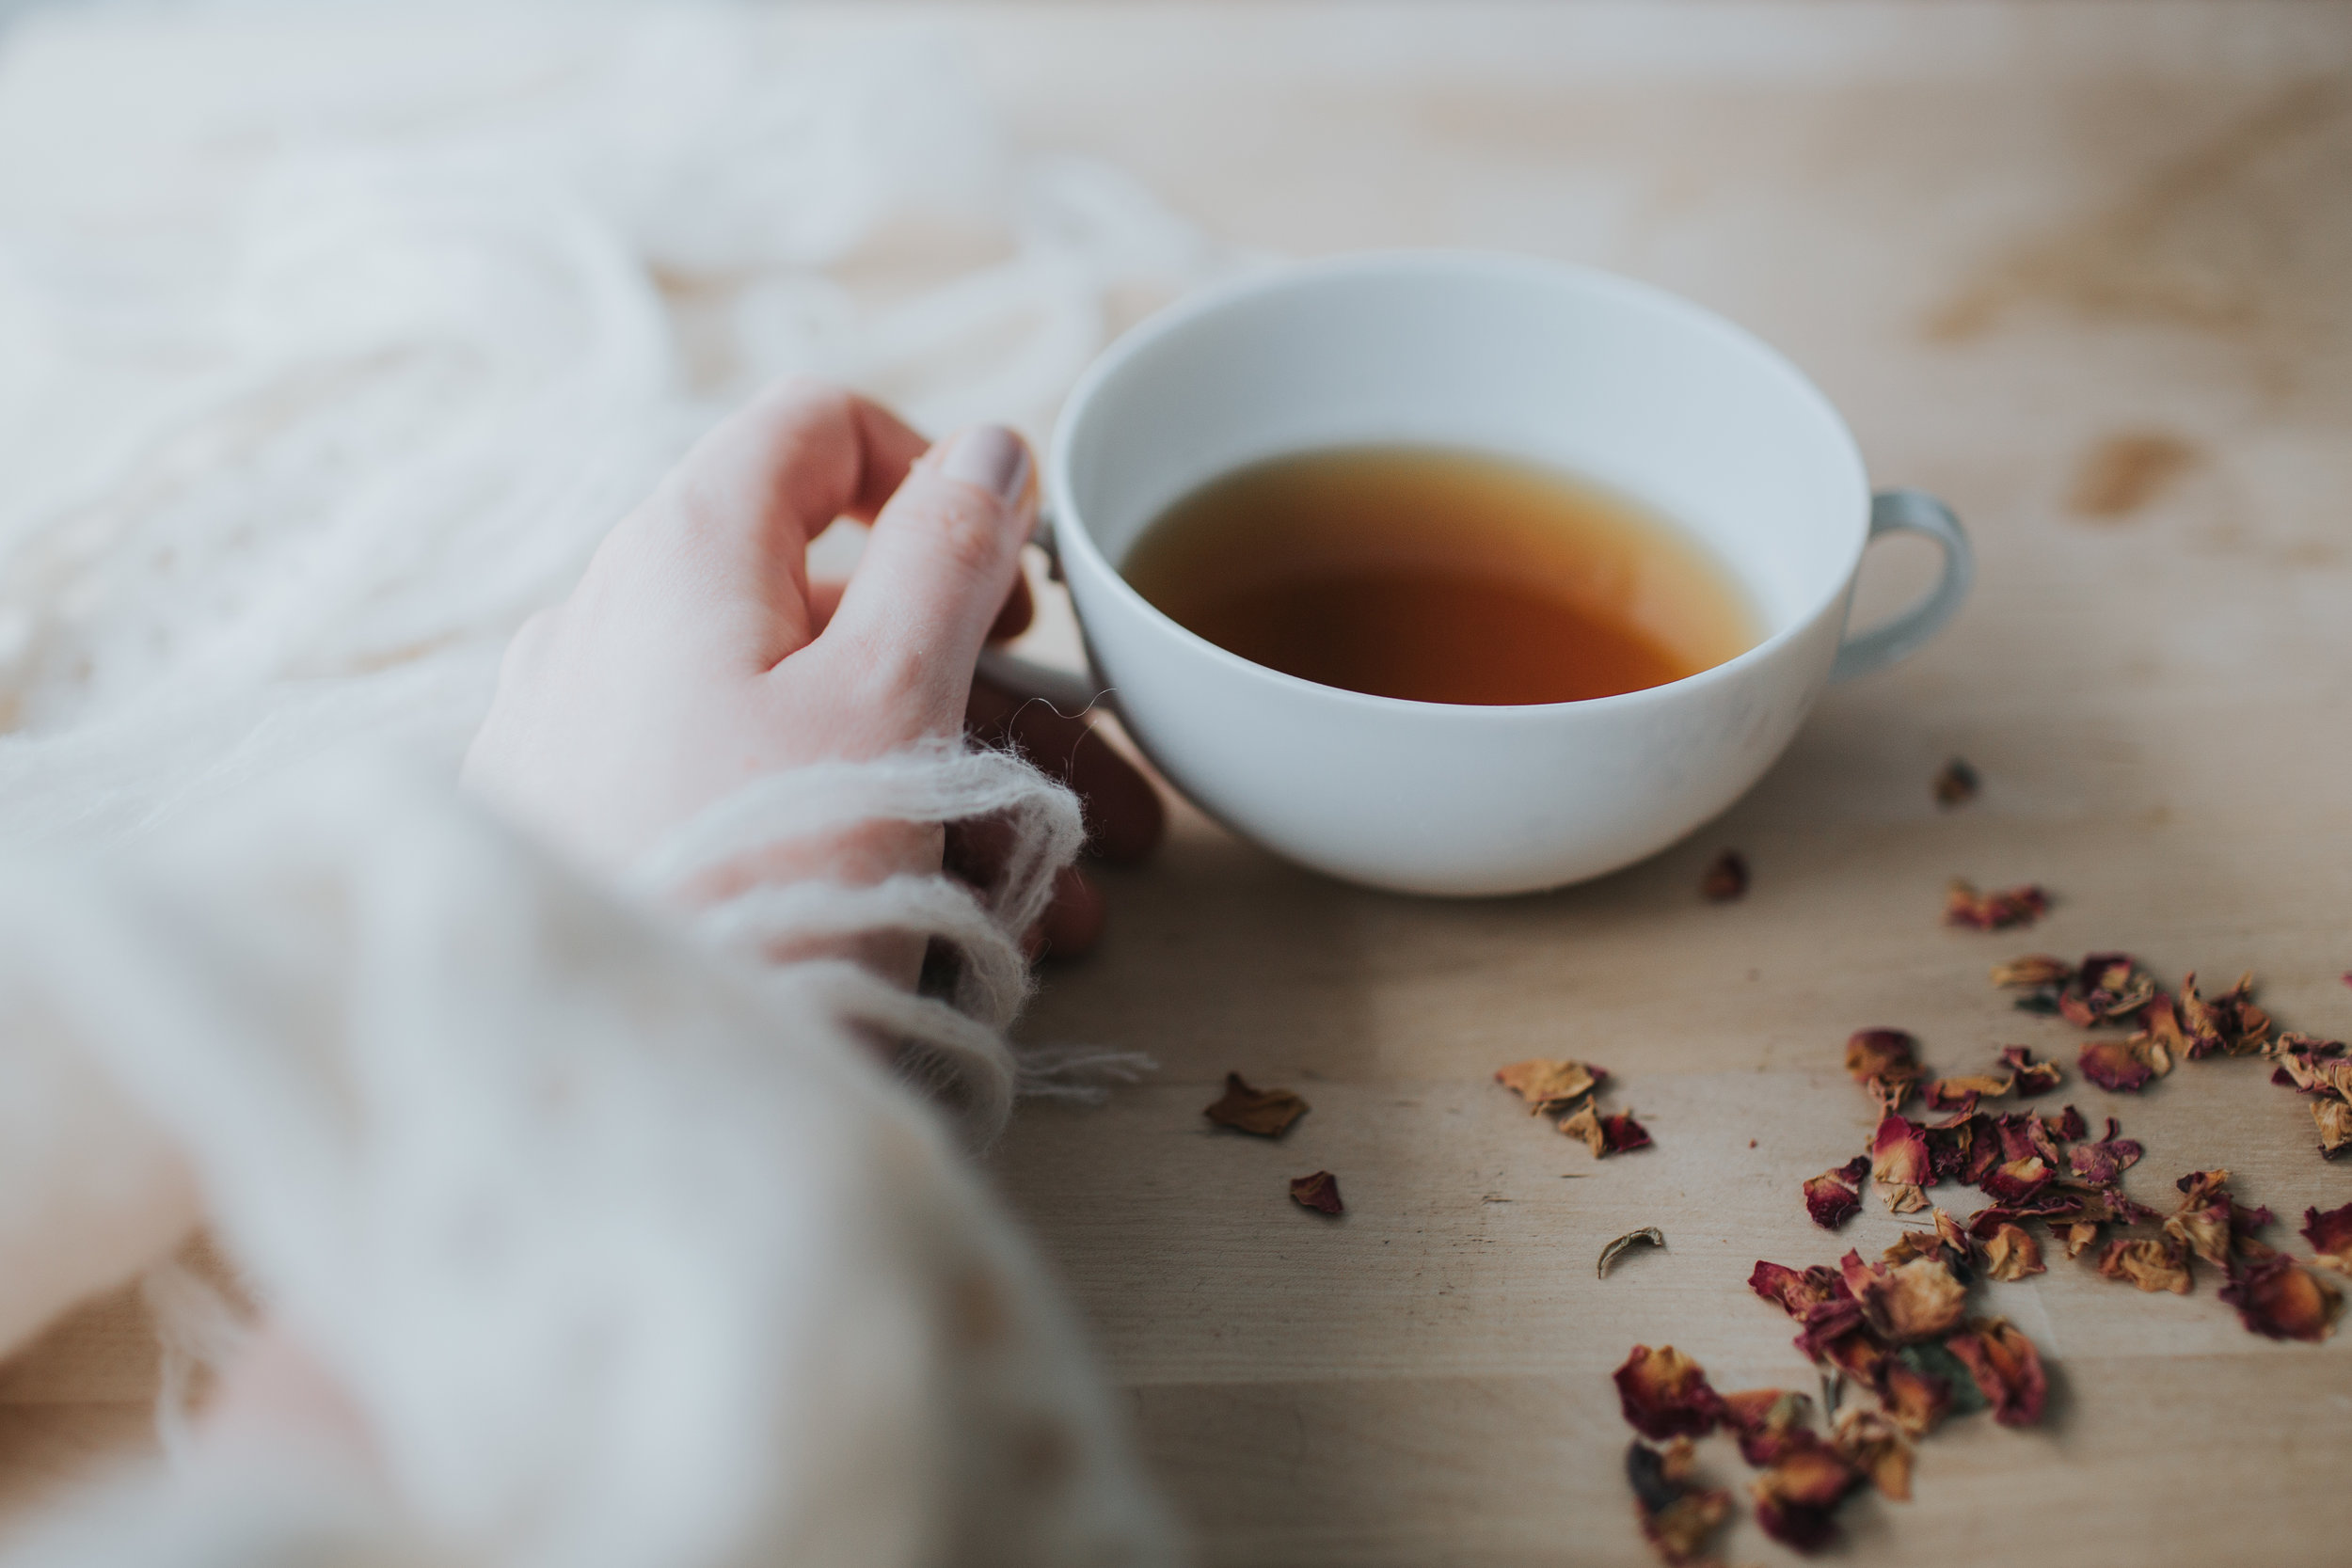 tea during pregnancy, postpartum, breastfeeding and during menstruation. All the mama tea's on www.houseofsmilla.com/blog/mamateas - Motherhood and slow living blog by Eva-Maria Smith